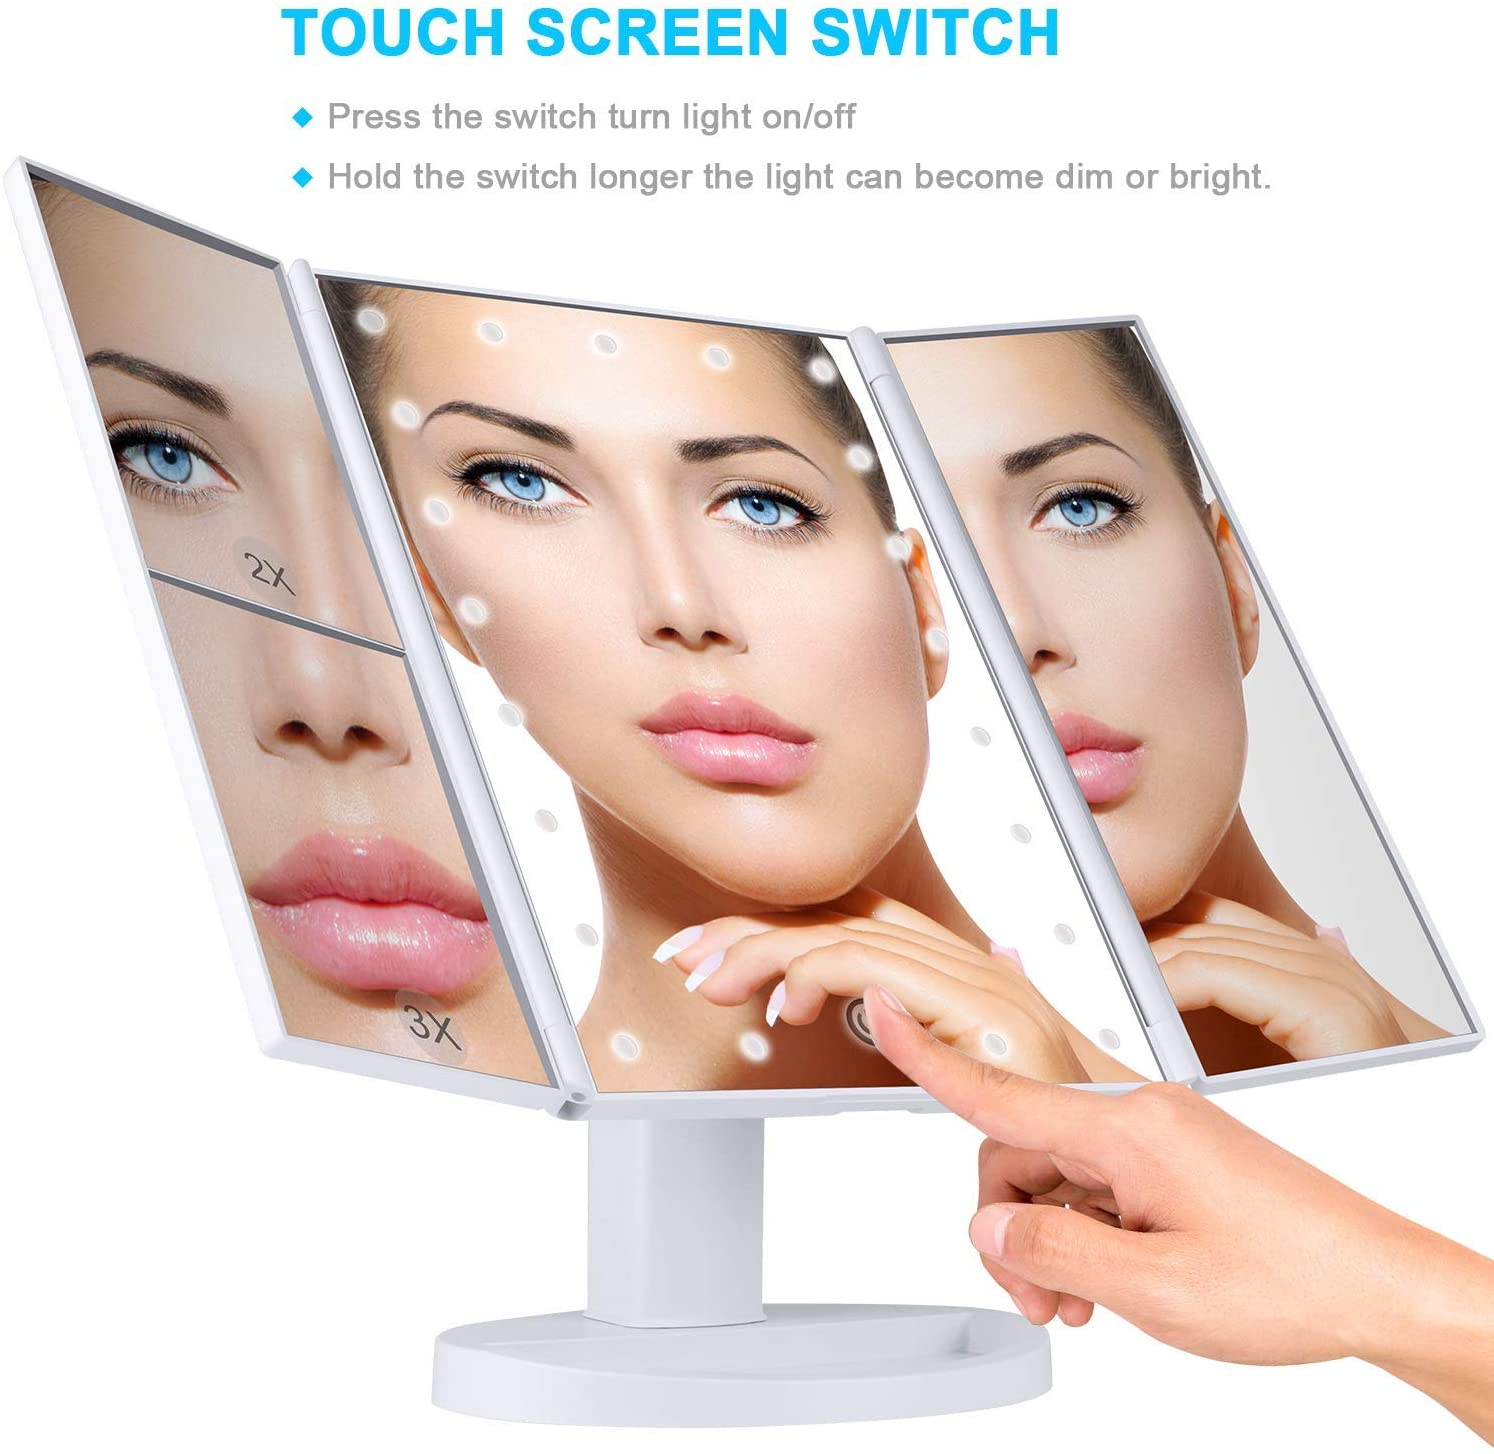 FEARLESS BEAUTY Makeup 21 Led Vanity Mirror with Lights, 1x 2X 3X Magnification, Touch Screen Switch, 180 Degree Rotation, Dual Power Supply, Portable Trifold Makeup Mirror